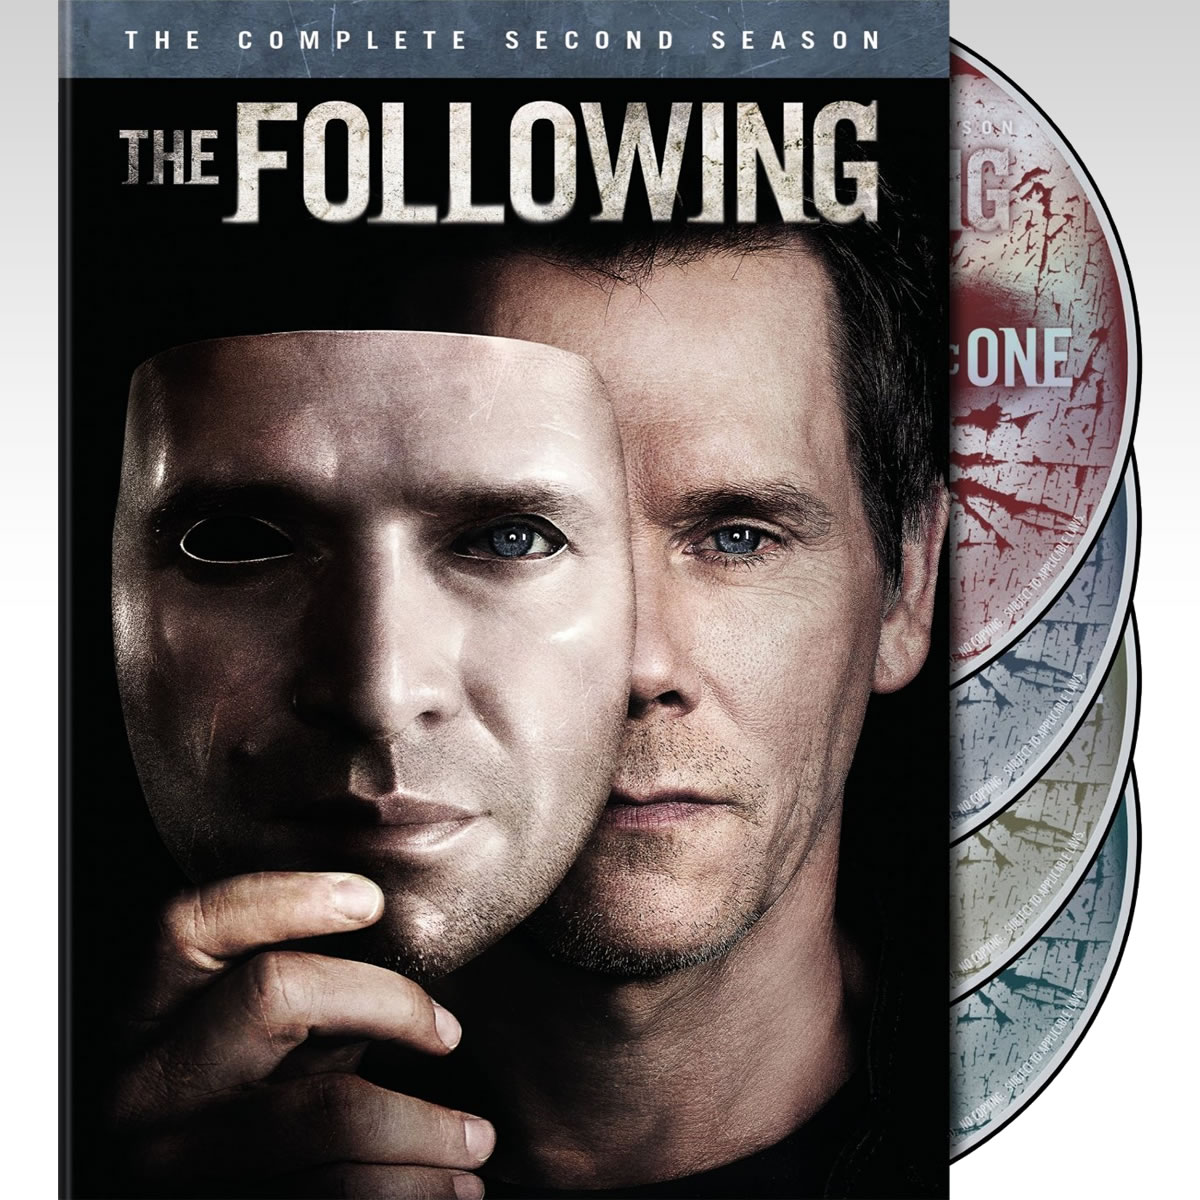 THE FOLLOWING: THE COMPLETE 2nd SEASON - THE FOLLOWING: 2η ΠΕΡΙΟΔΟΣ (4 DVDs)